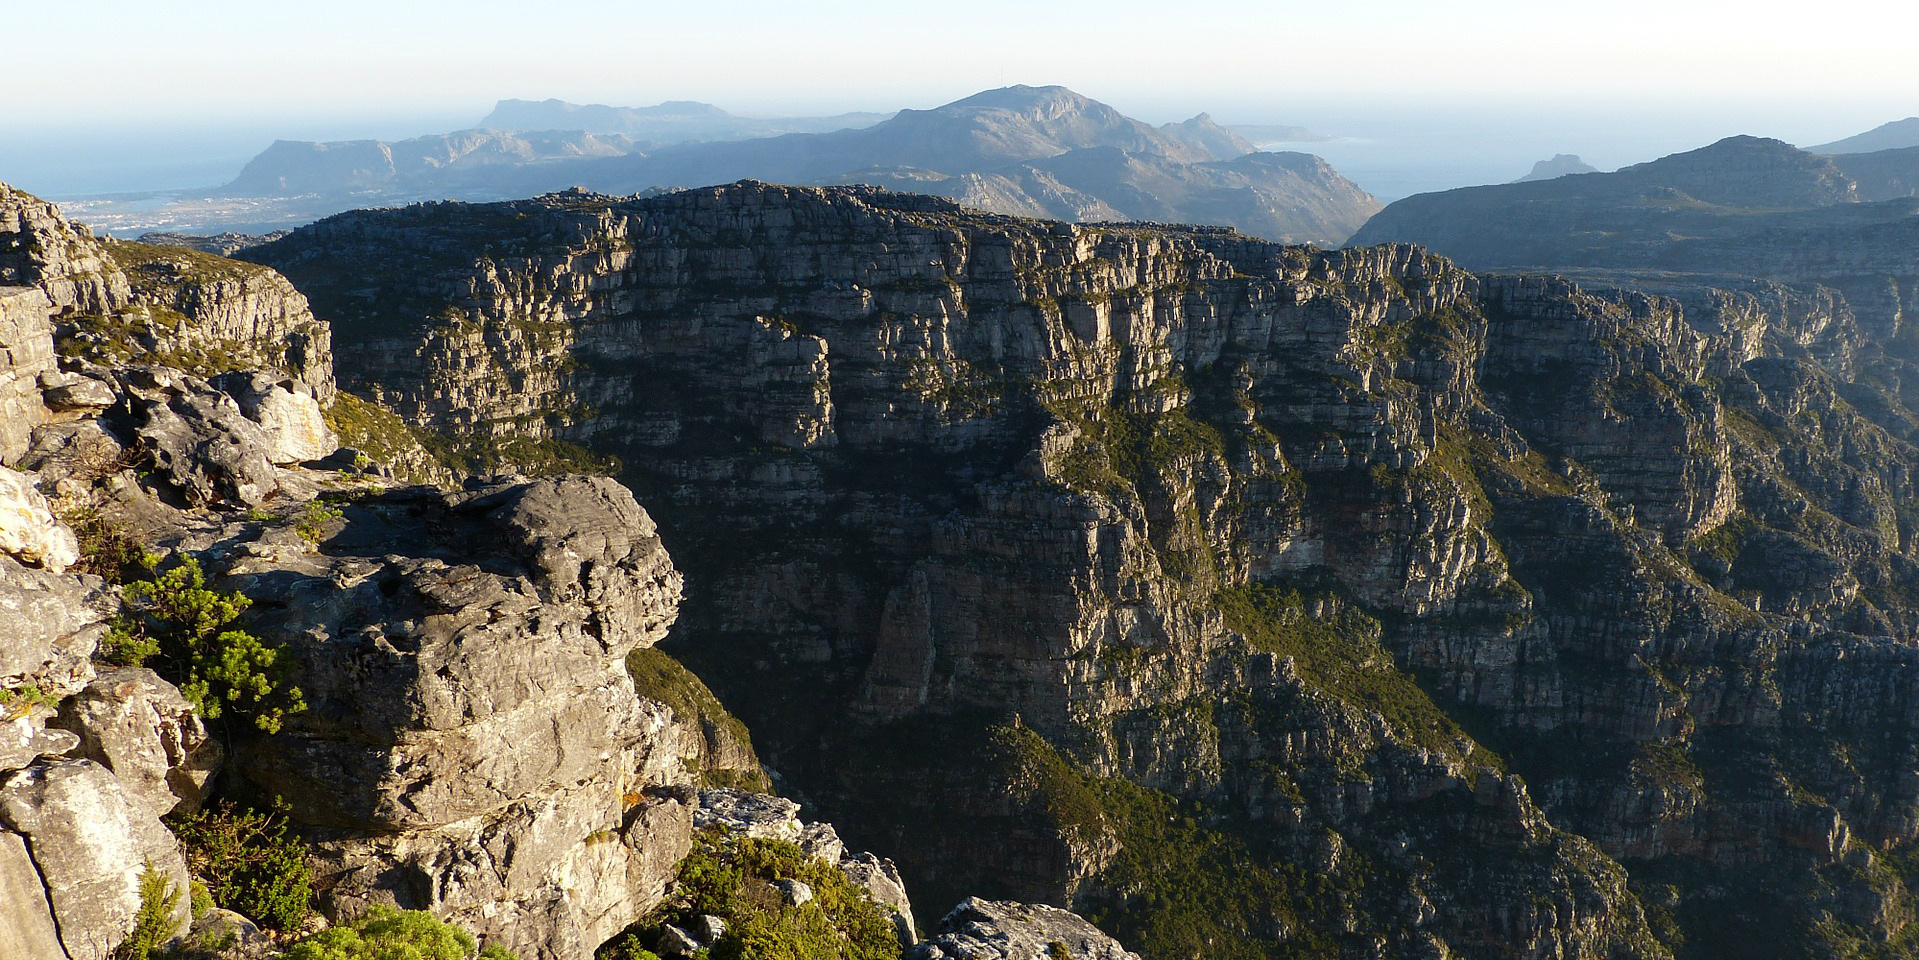 Take advantage of volunteer opportunities in cape town and visit iconic sites such as table mountain.